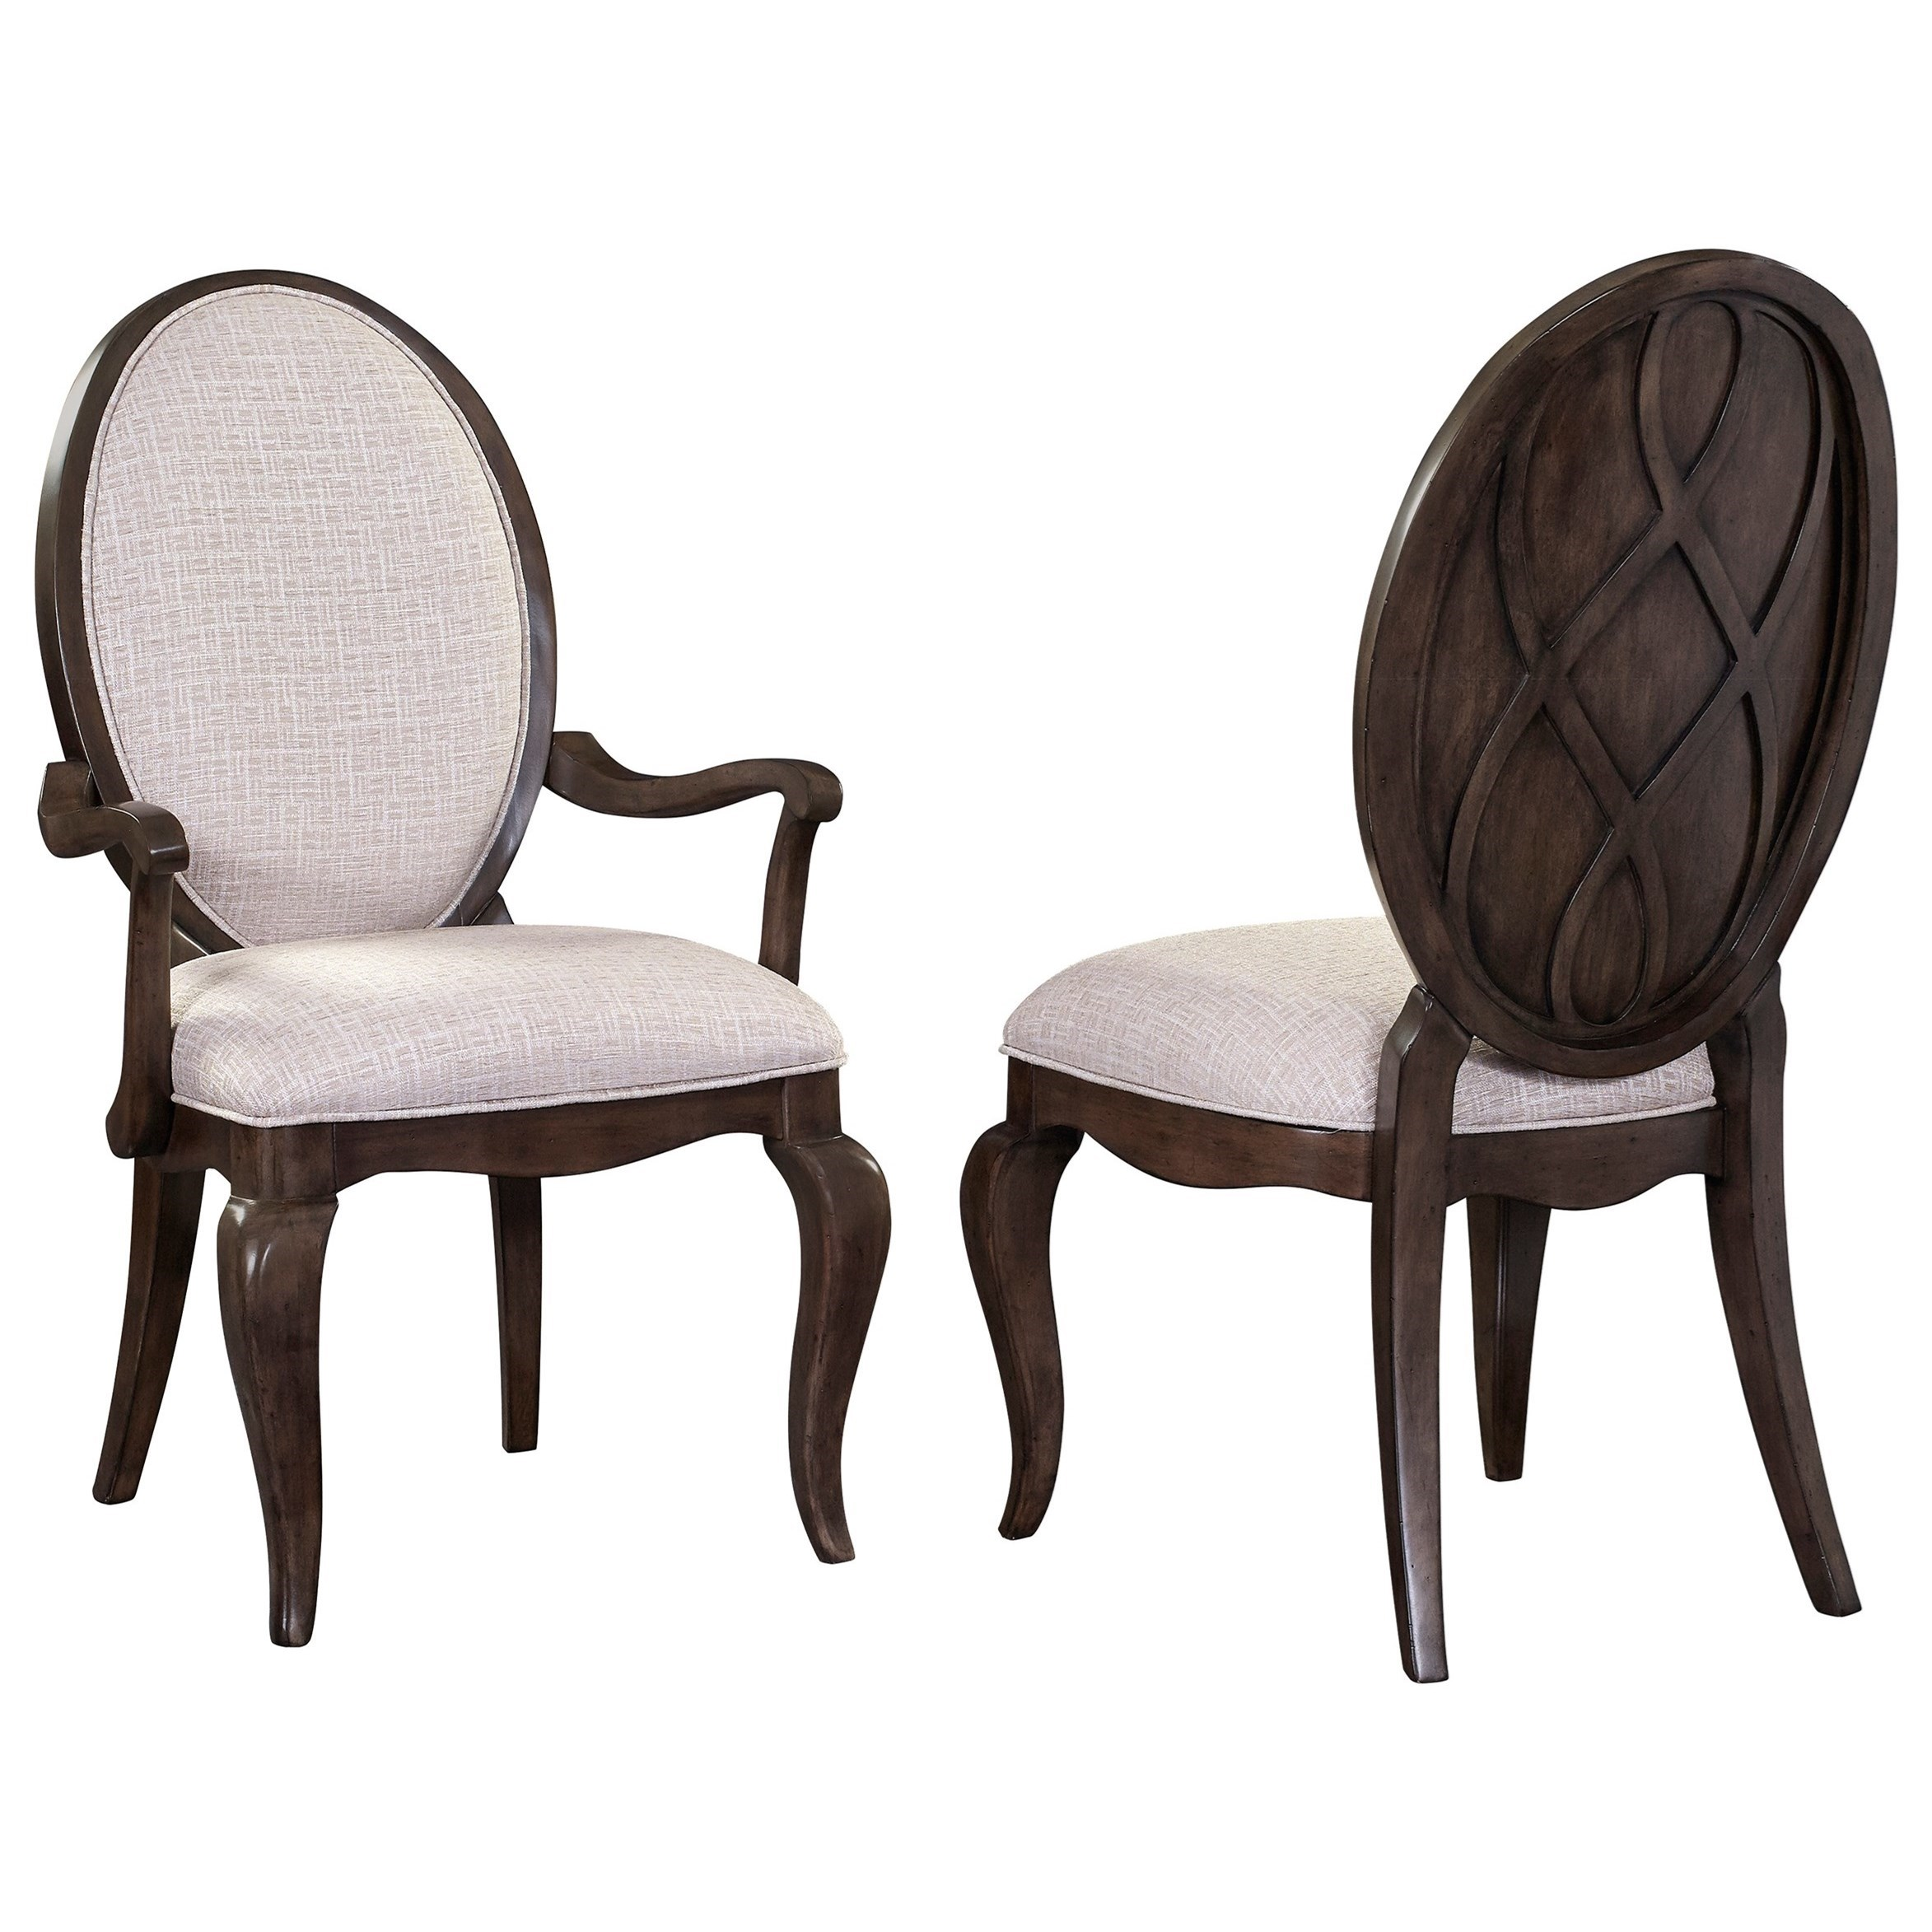 Broyhill furniture cashmera 4860 580 dining arm chair with for Oval back dining room chairs